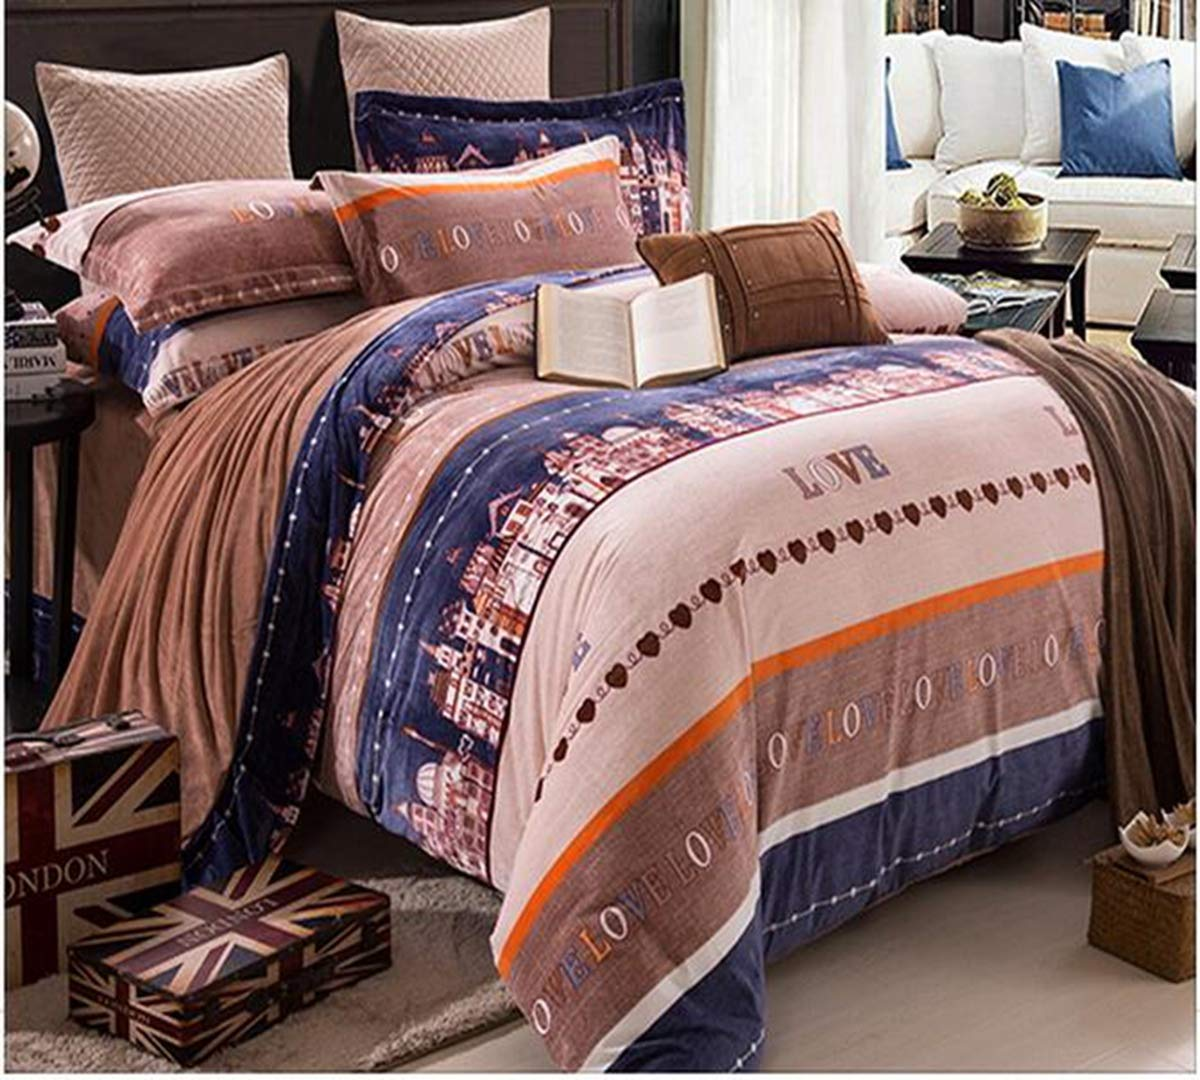 HUROohj Cotton,The New Bedding Four Sets,European Style,Bedding Kits( 4 Pcs) for Bed Size Twin/Queen/King,-King